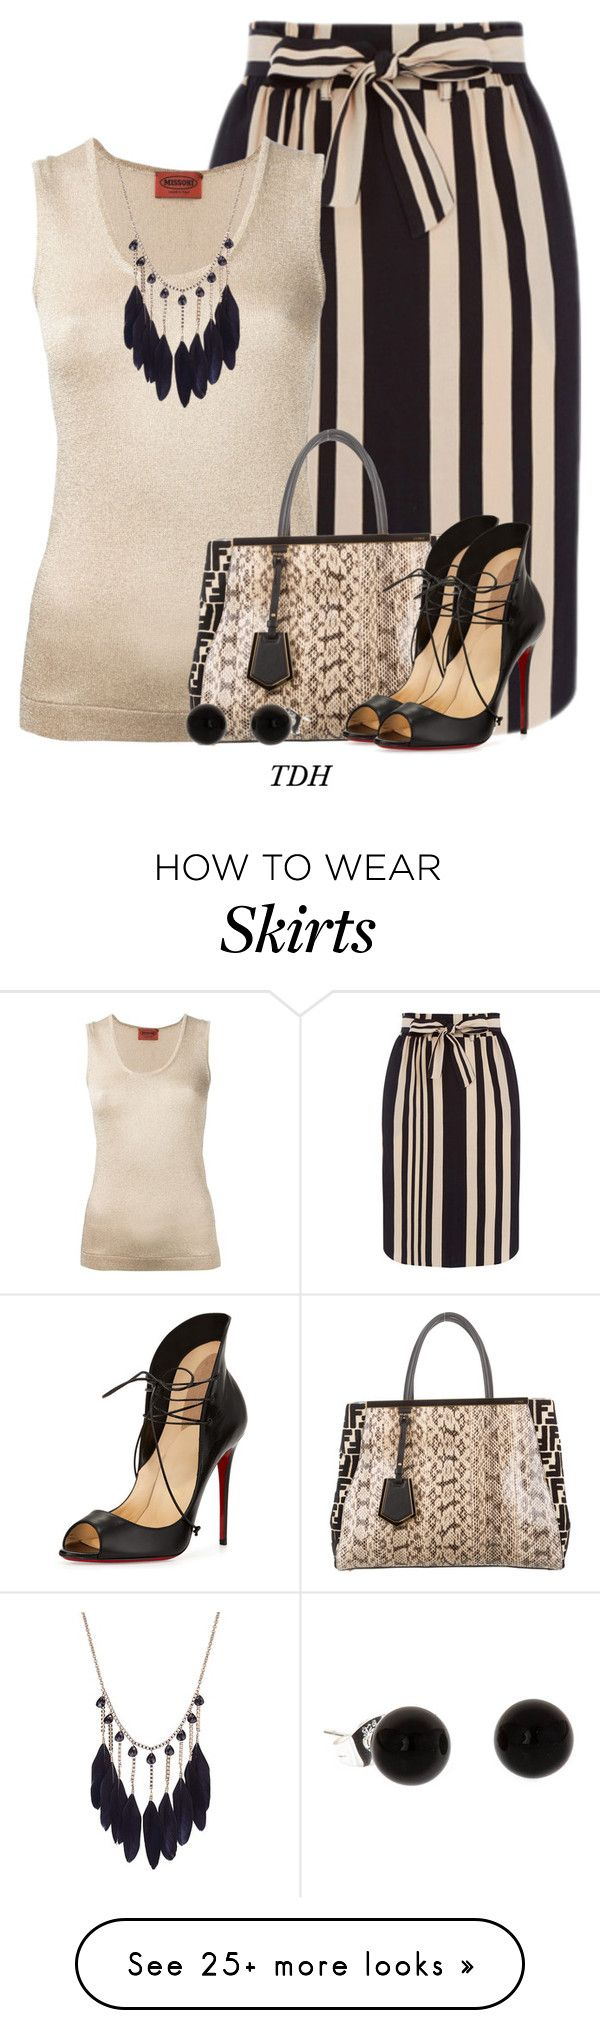 """Striped Skirt"" by talvadh on Polyvore featuring Missoni, Fendi and Christian Louboutin"